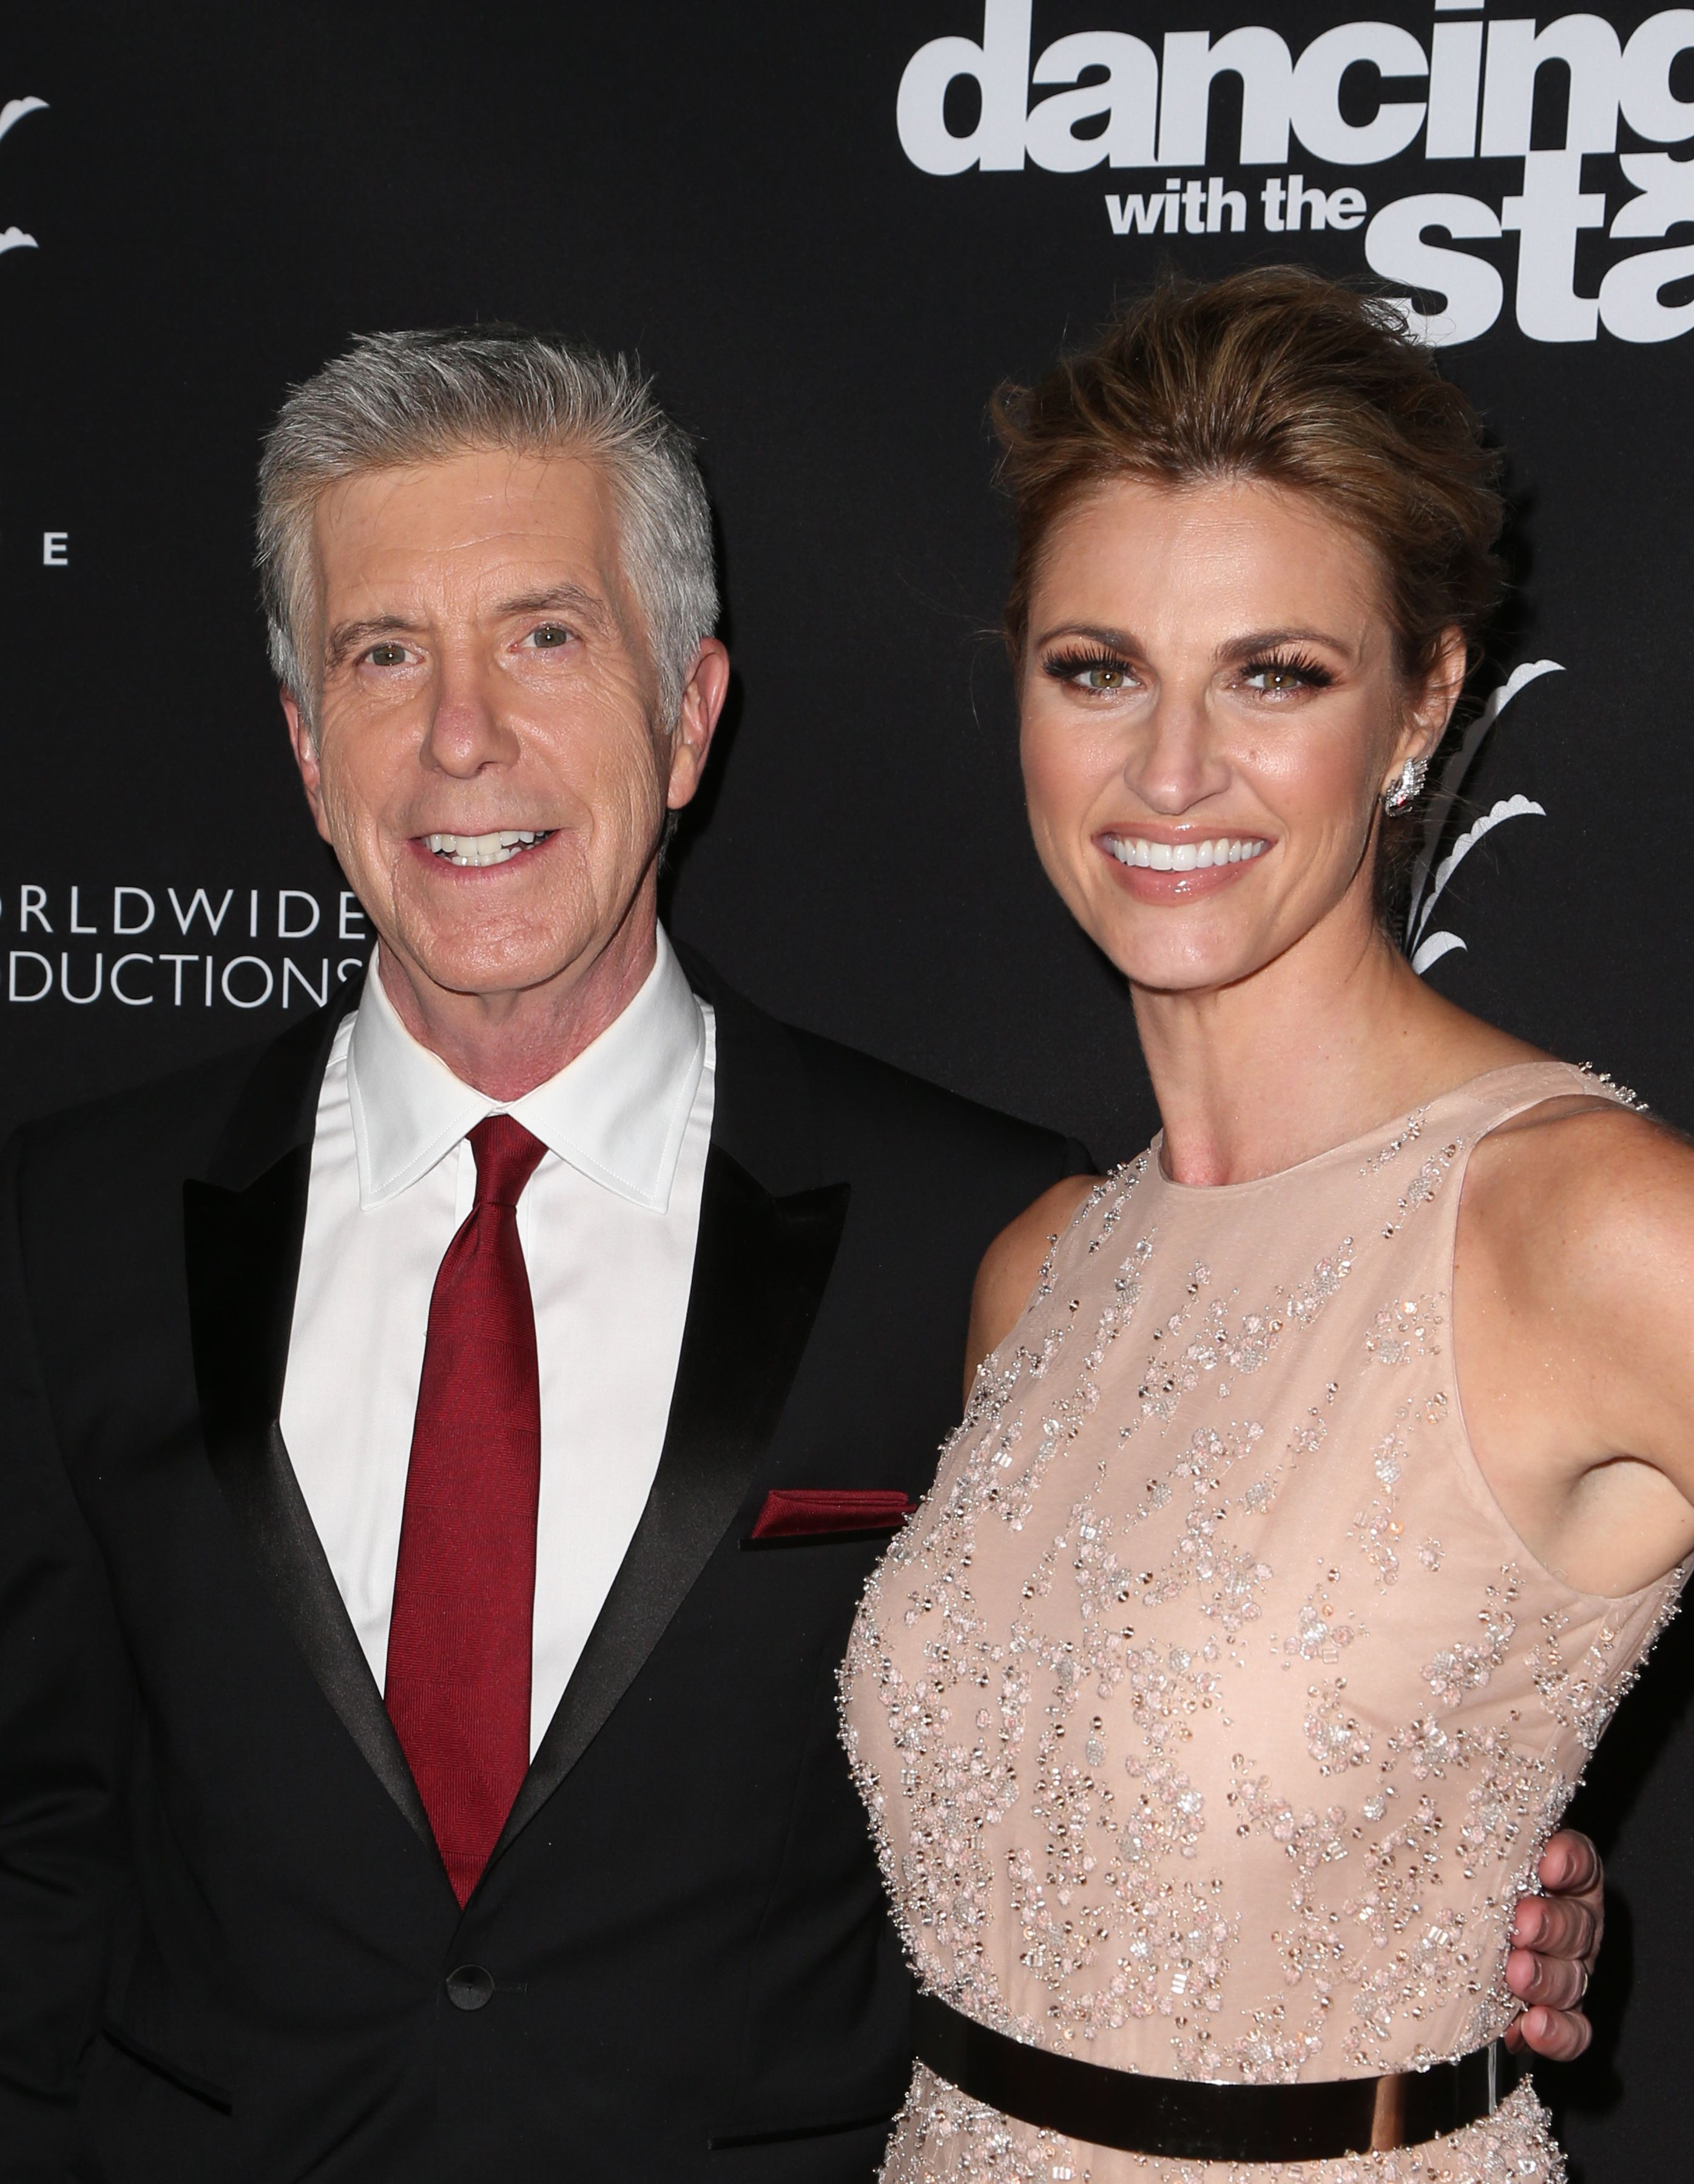 Tom Bergeron Says He's Been Axed as Host of 'Dancing With the Stars'